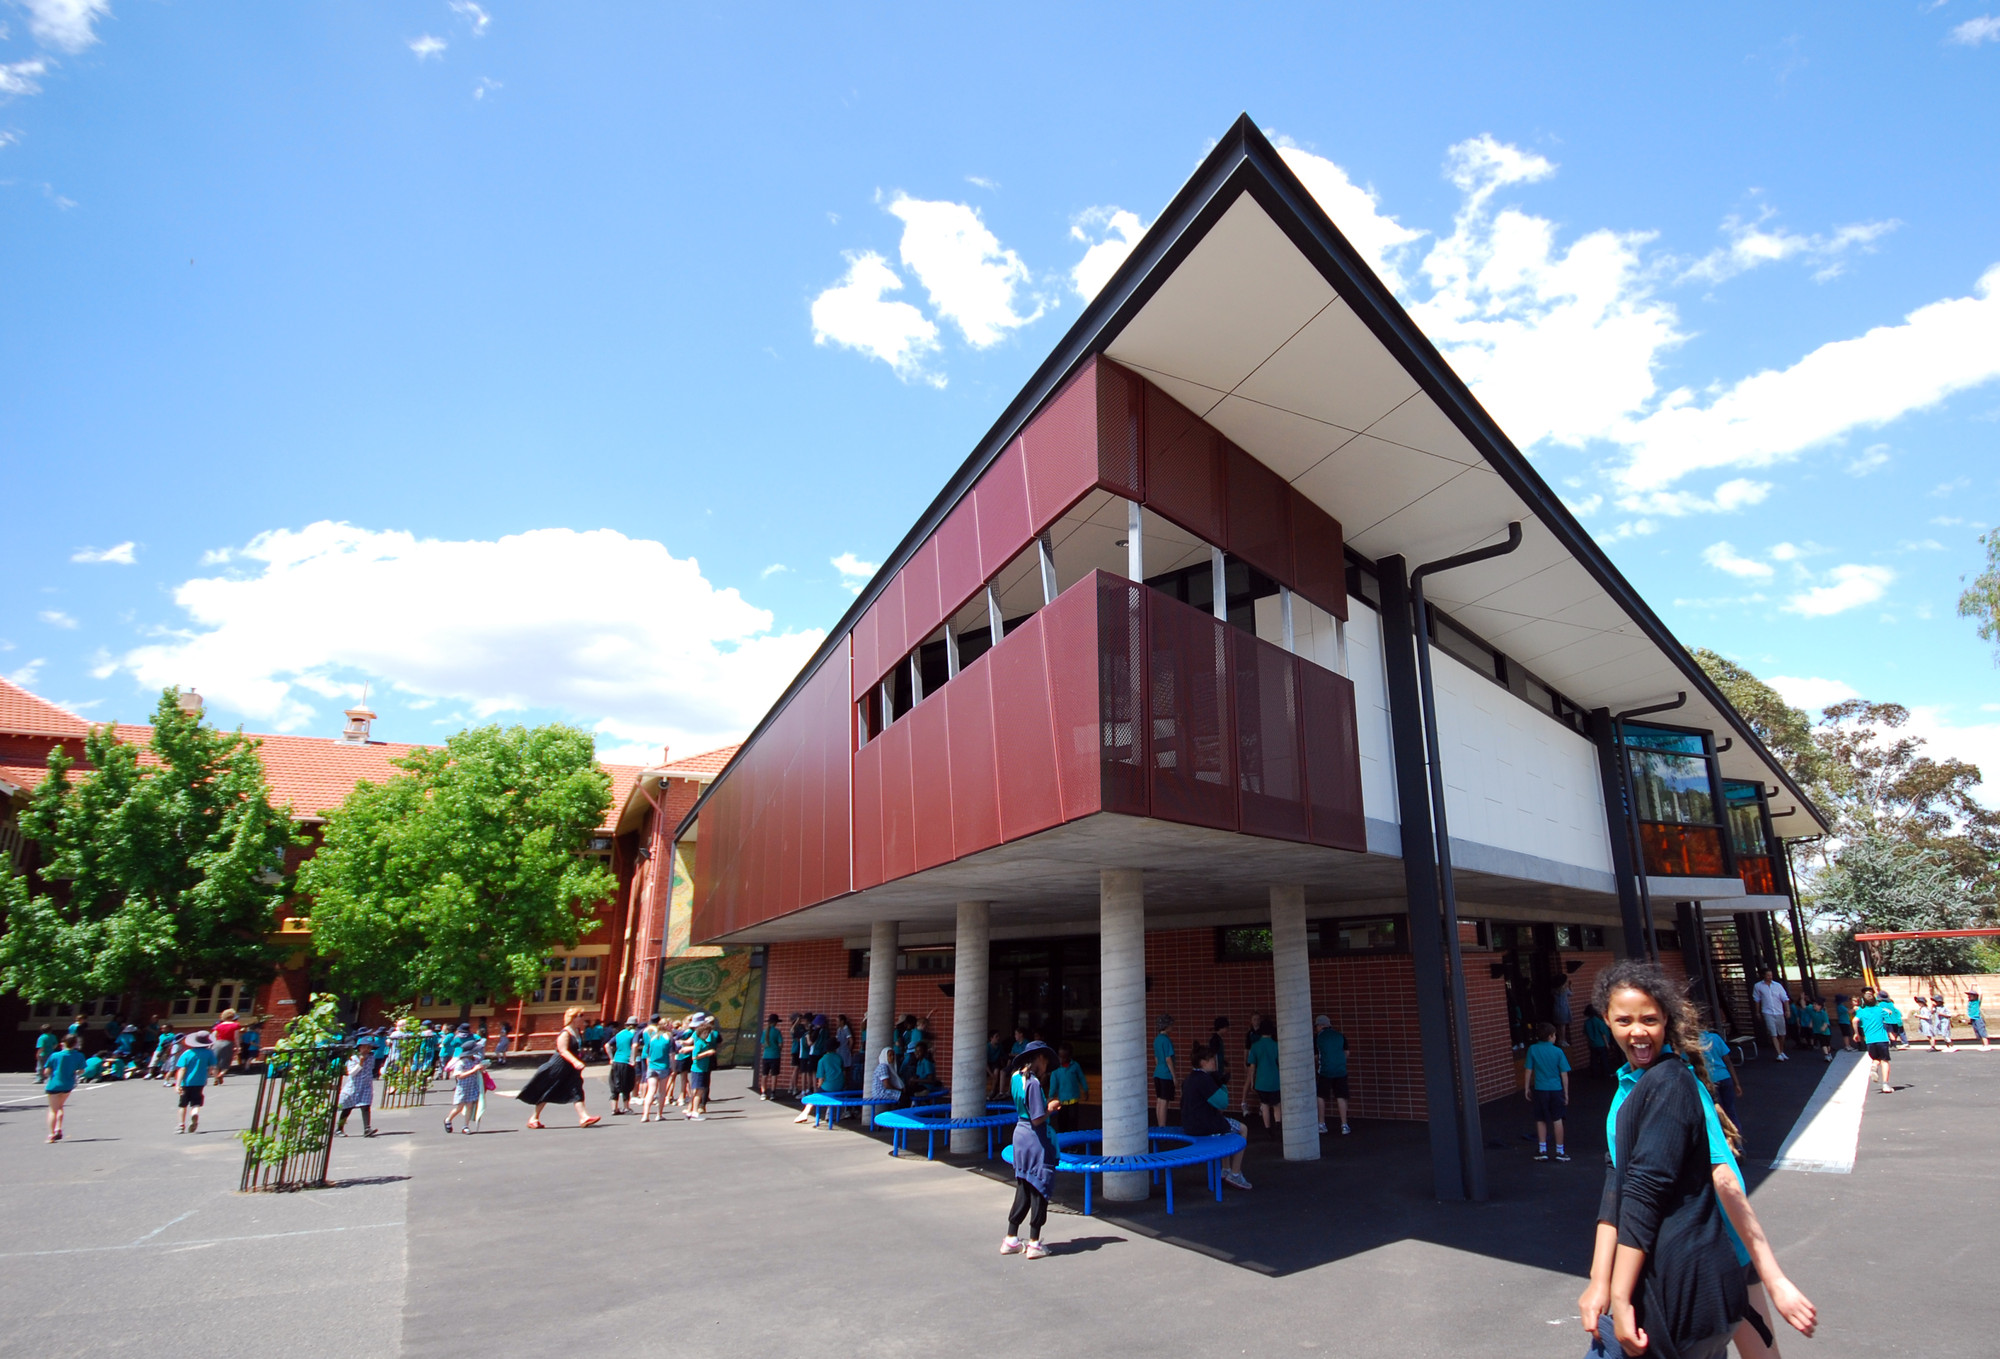 Flemington Primary School / Maddison Architects, © Amir Shayan